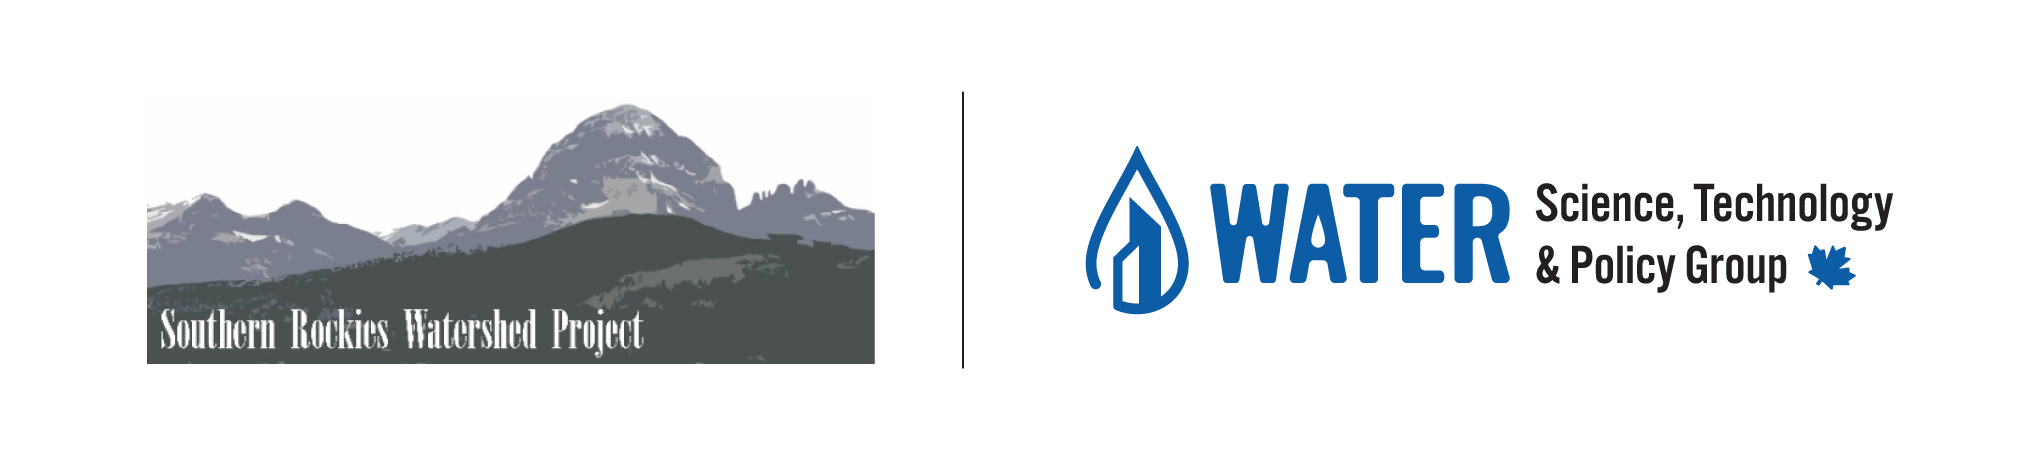 Water technology service for municipalities brand identity logo water drop with buildings rocky mountain watershed project